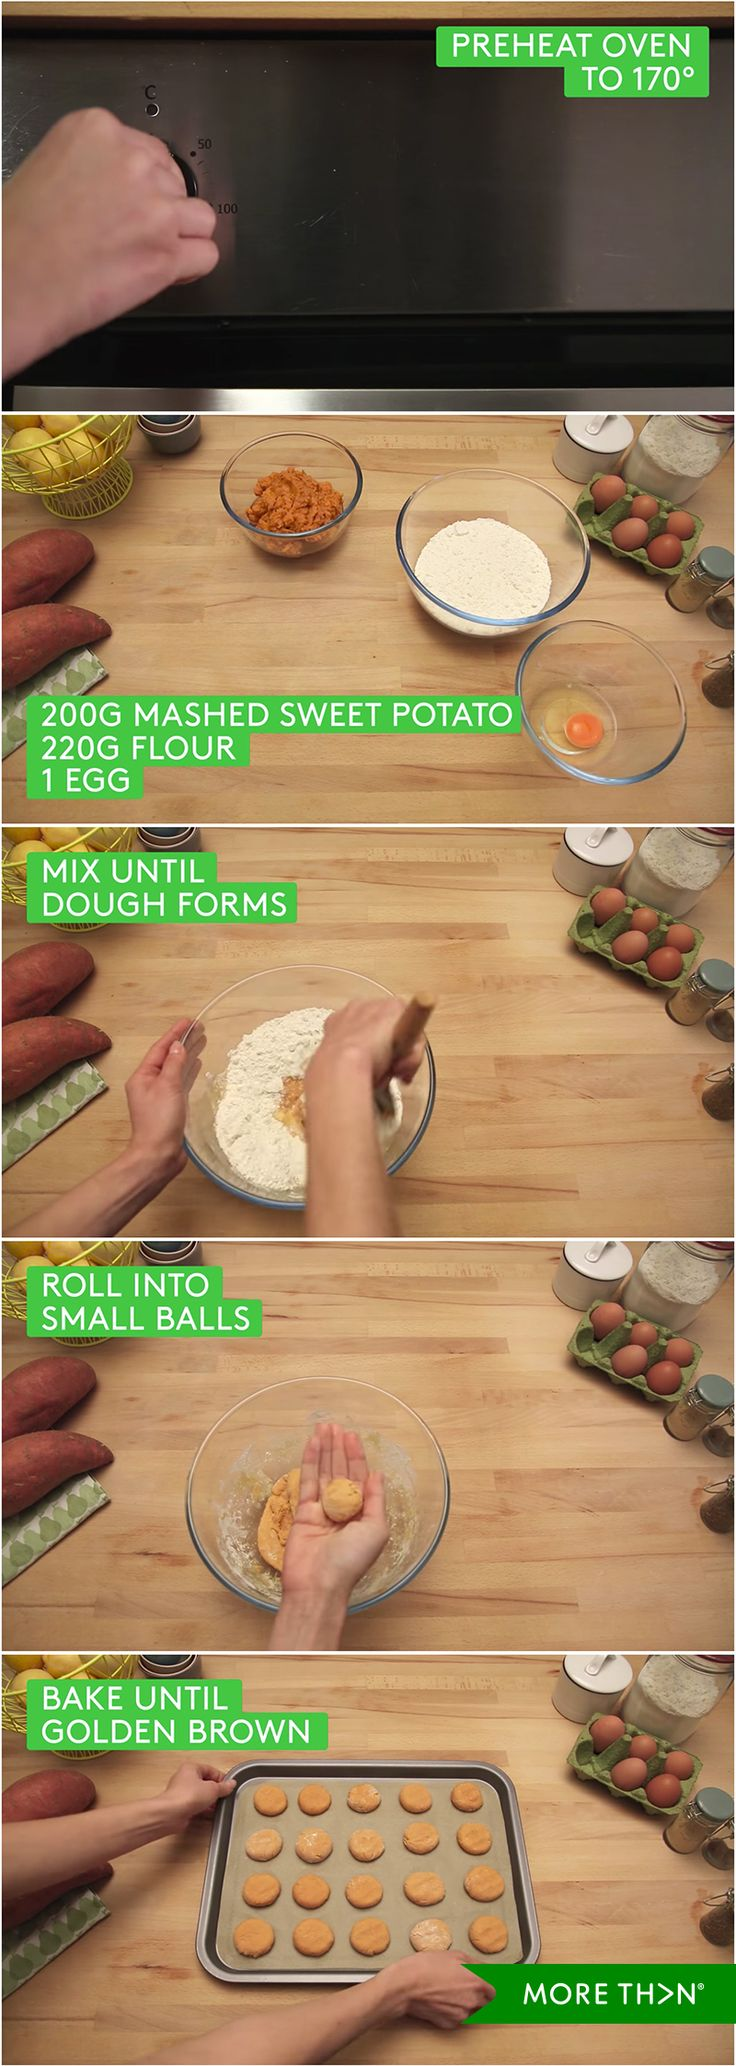 Want to cook delicious and easy treats for your dog? Grab some flour and preheat your oven! Watch the video to find out more.